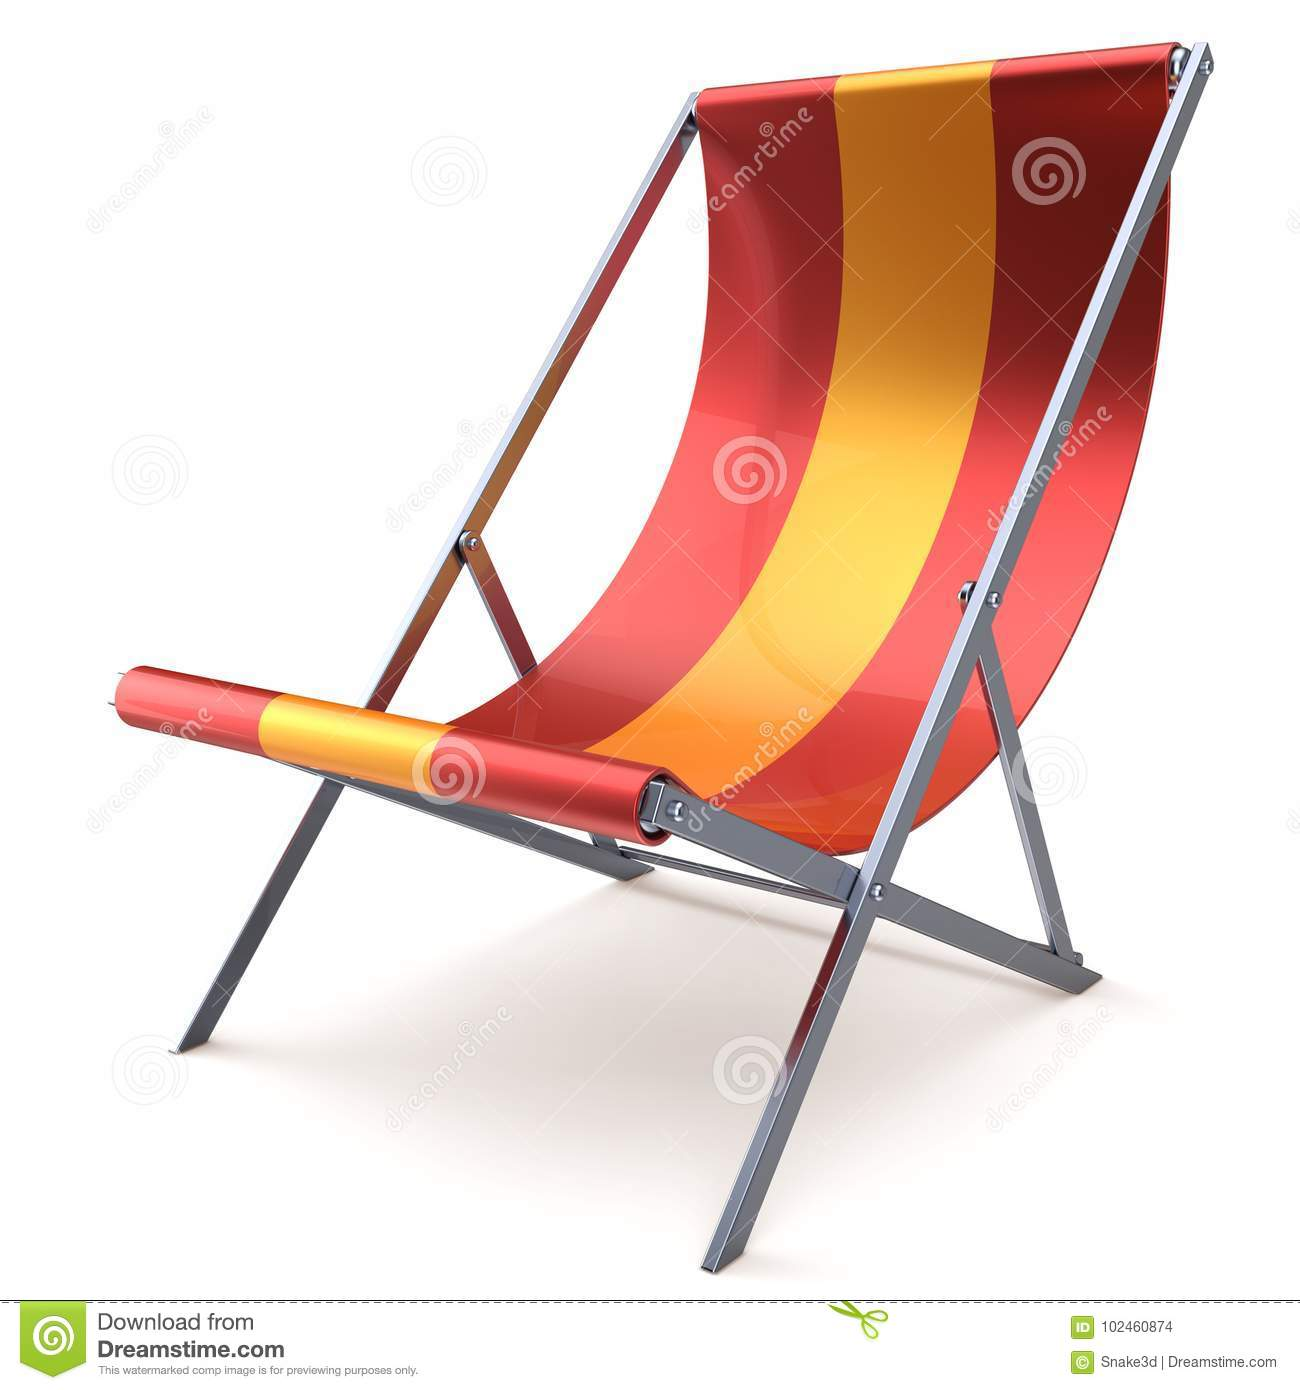 Delicieux Beach Chair Chaise Longue Red Yellow Nobody Relaxation Holidays Spa Resort  Summer Sun Tropical Sunbathing Travel Leisure Comfort Outdoor Concept.